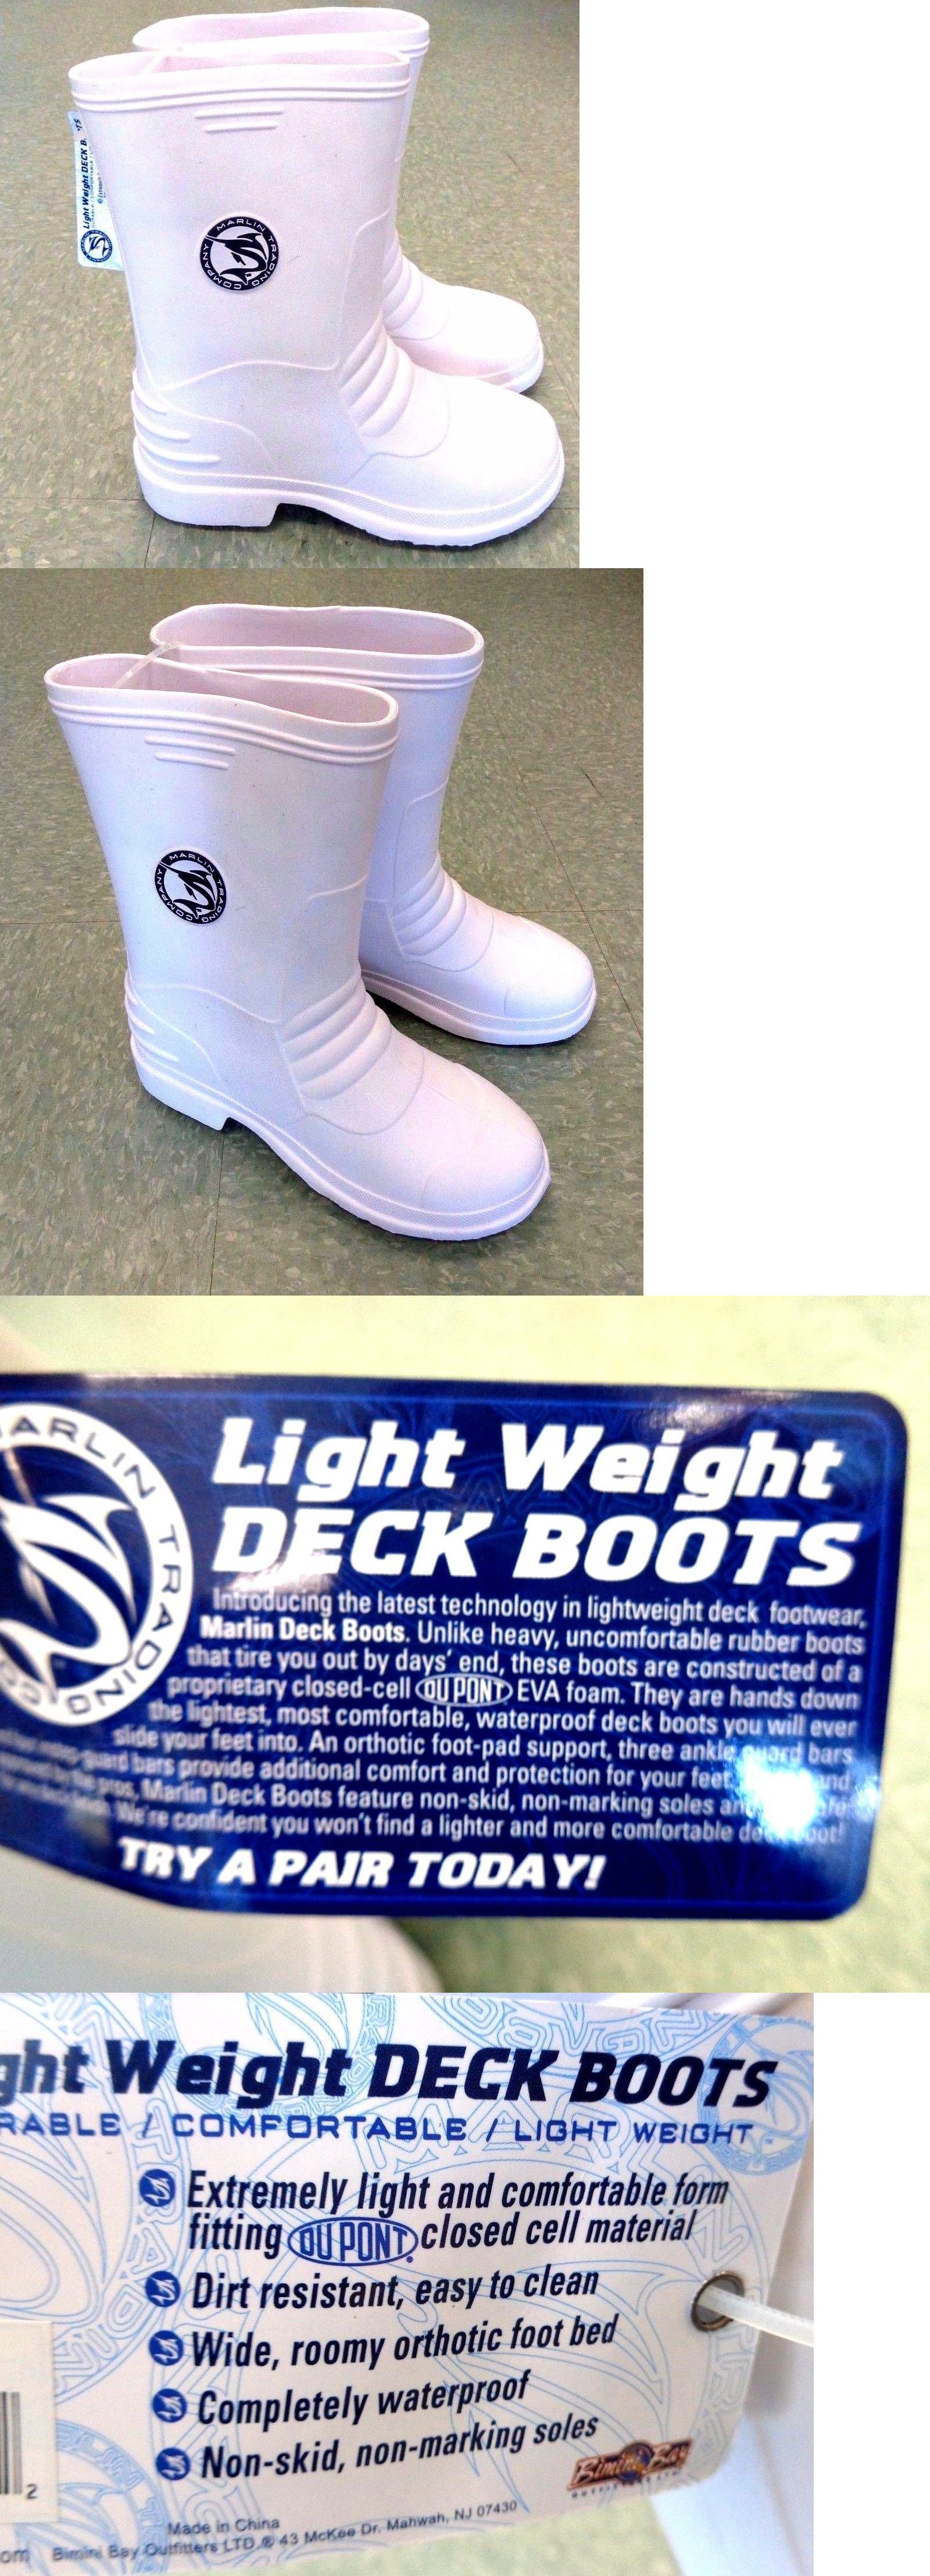 Boots and Shoes 179980: Marlin Deck Boots - Lightweight All Purpose Fishing Boots - White - Select Size -> BUY IT NOW ONLY: $31.99 on eBay!